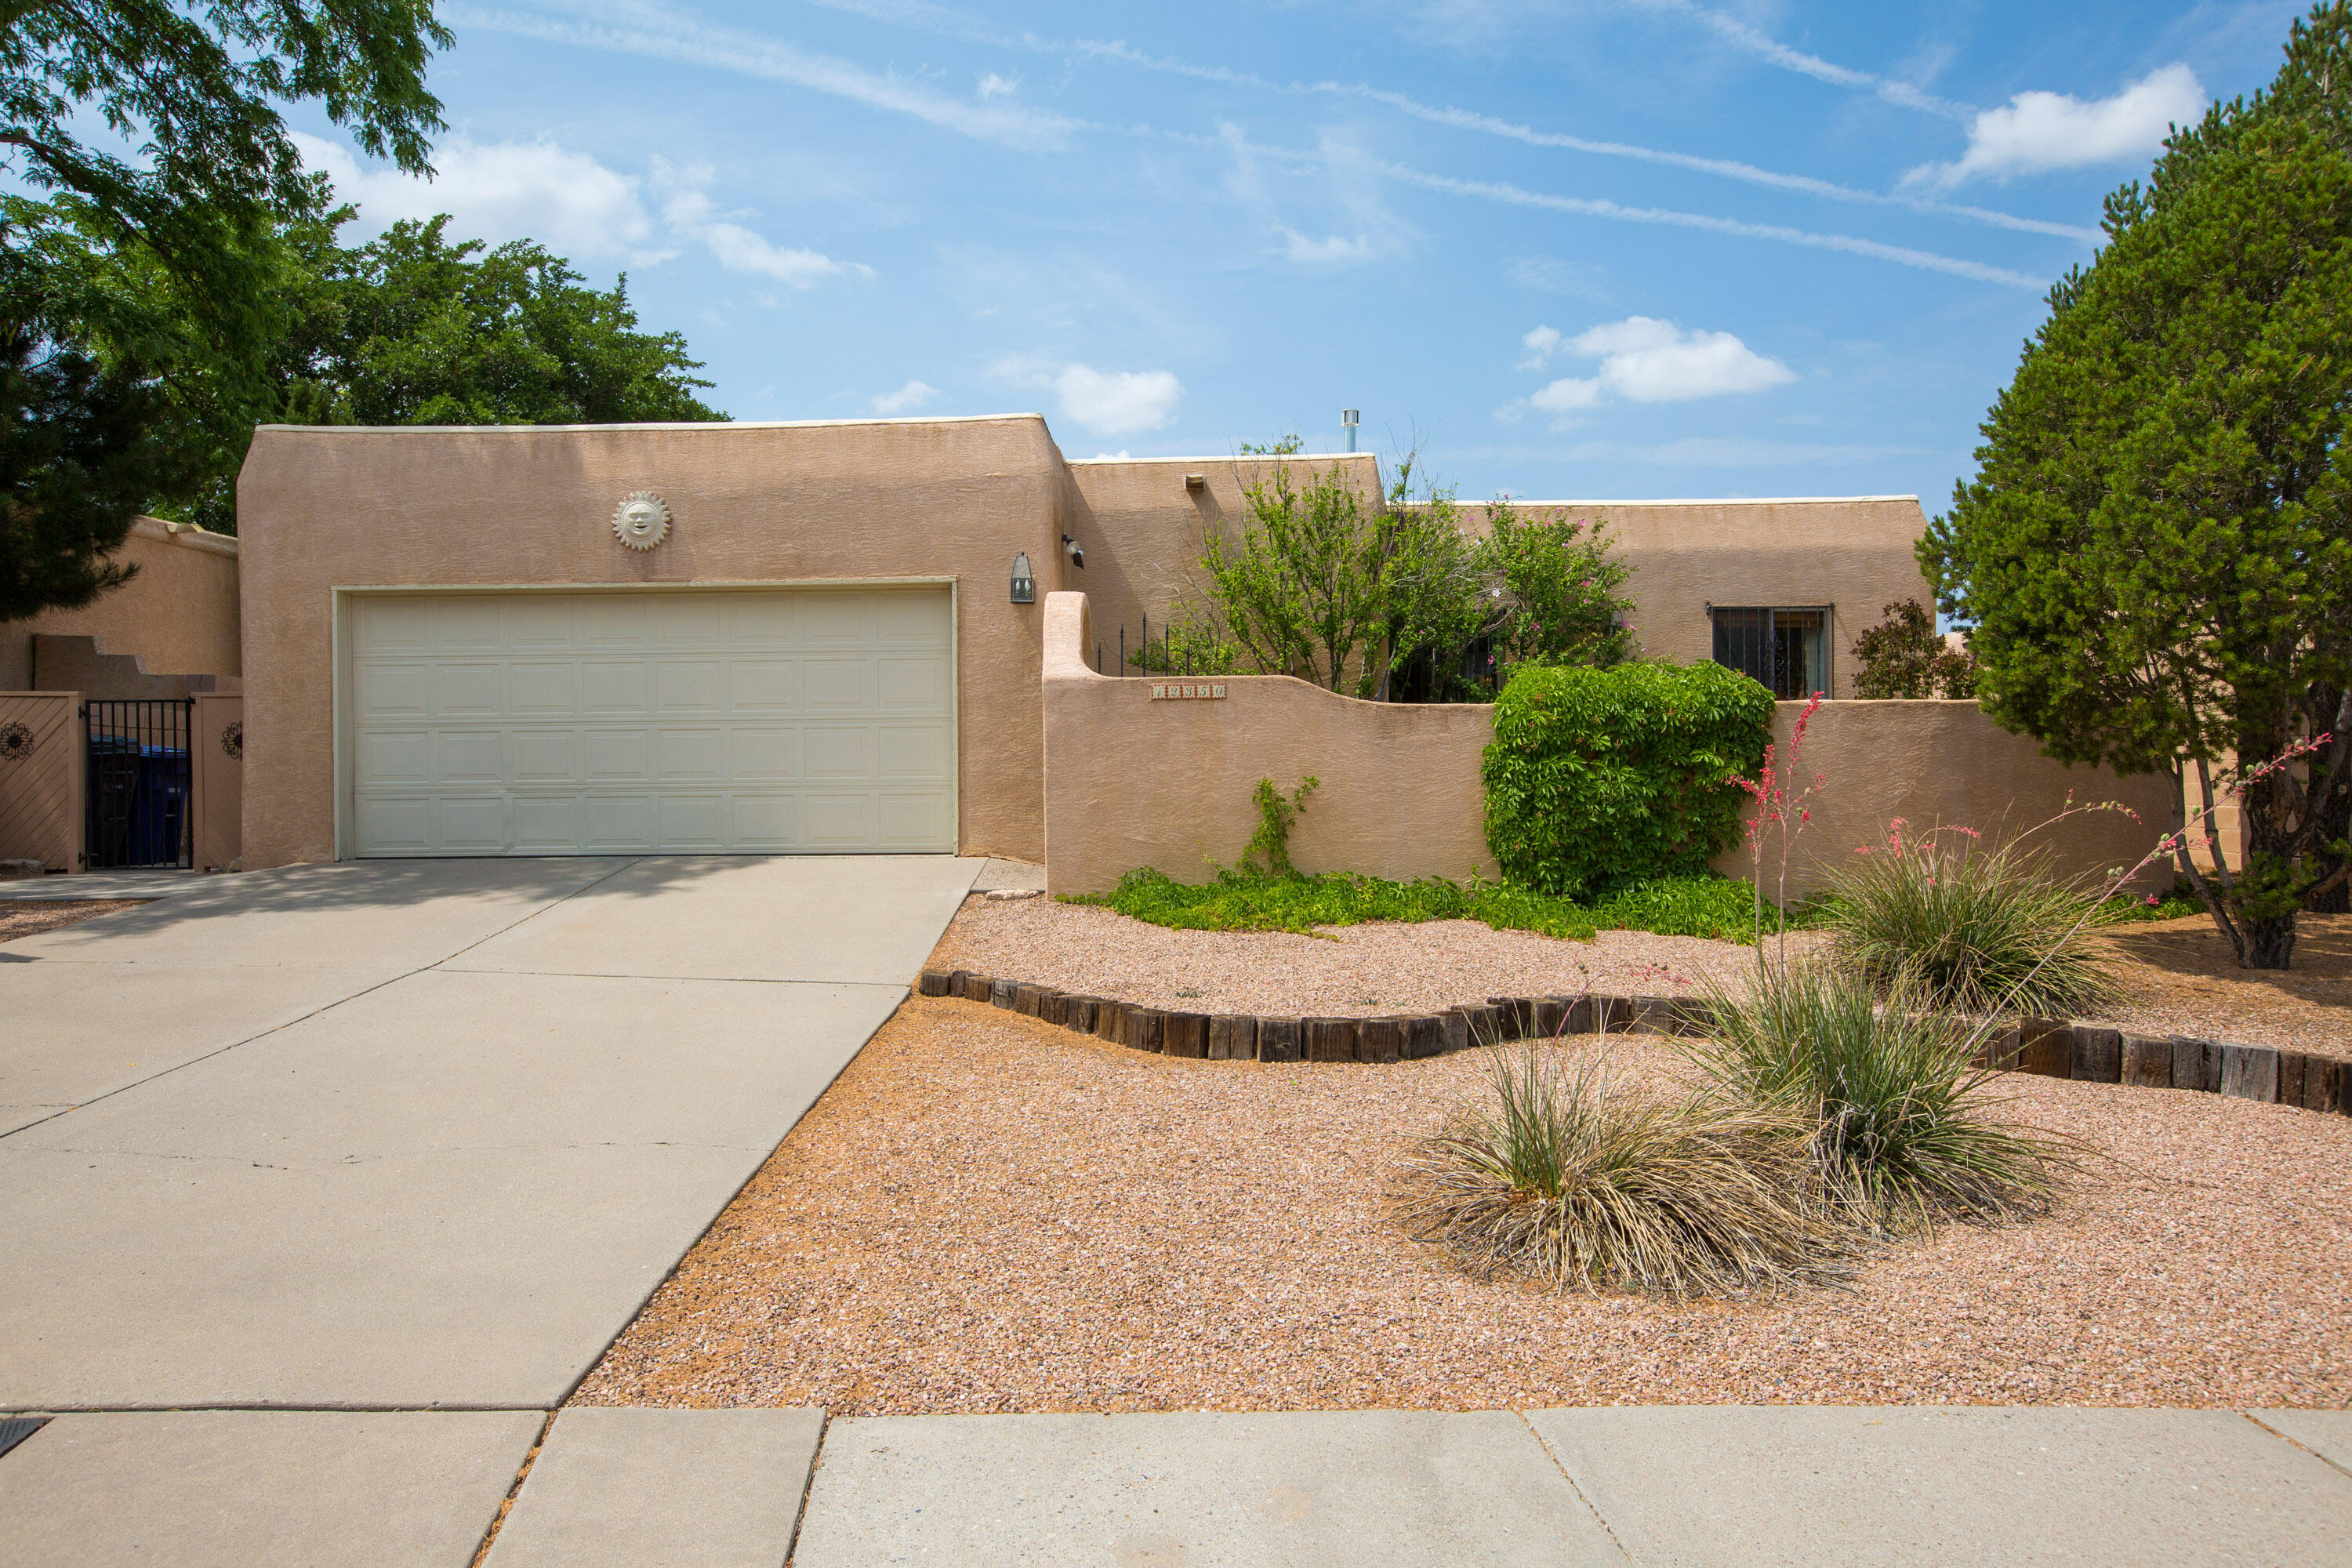 Welcome to this Charming Santa Fe style home in the desired Lynwood Park Subdivision.  Pride of ownership evident throughout. Beautiful wood beam accents throughout with a great floorplan with lots of natural light.  Sunning Hacienda-Kiva Fireplace with a large living room. Large Master bedroom has a Full bath with Dual sinks. Home includes a breakfast nook with an additional Formal Dining room. Minutes to the Park, nearby desired schools, shopping and close to the foothills. Mountain views from the front of the home. Come see this before it goes.